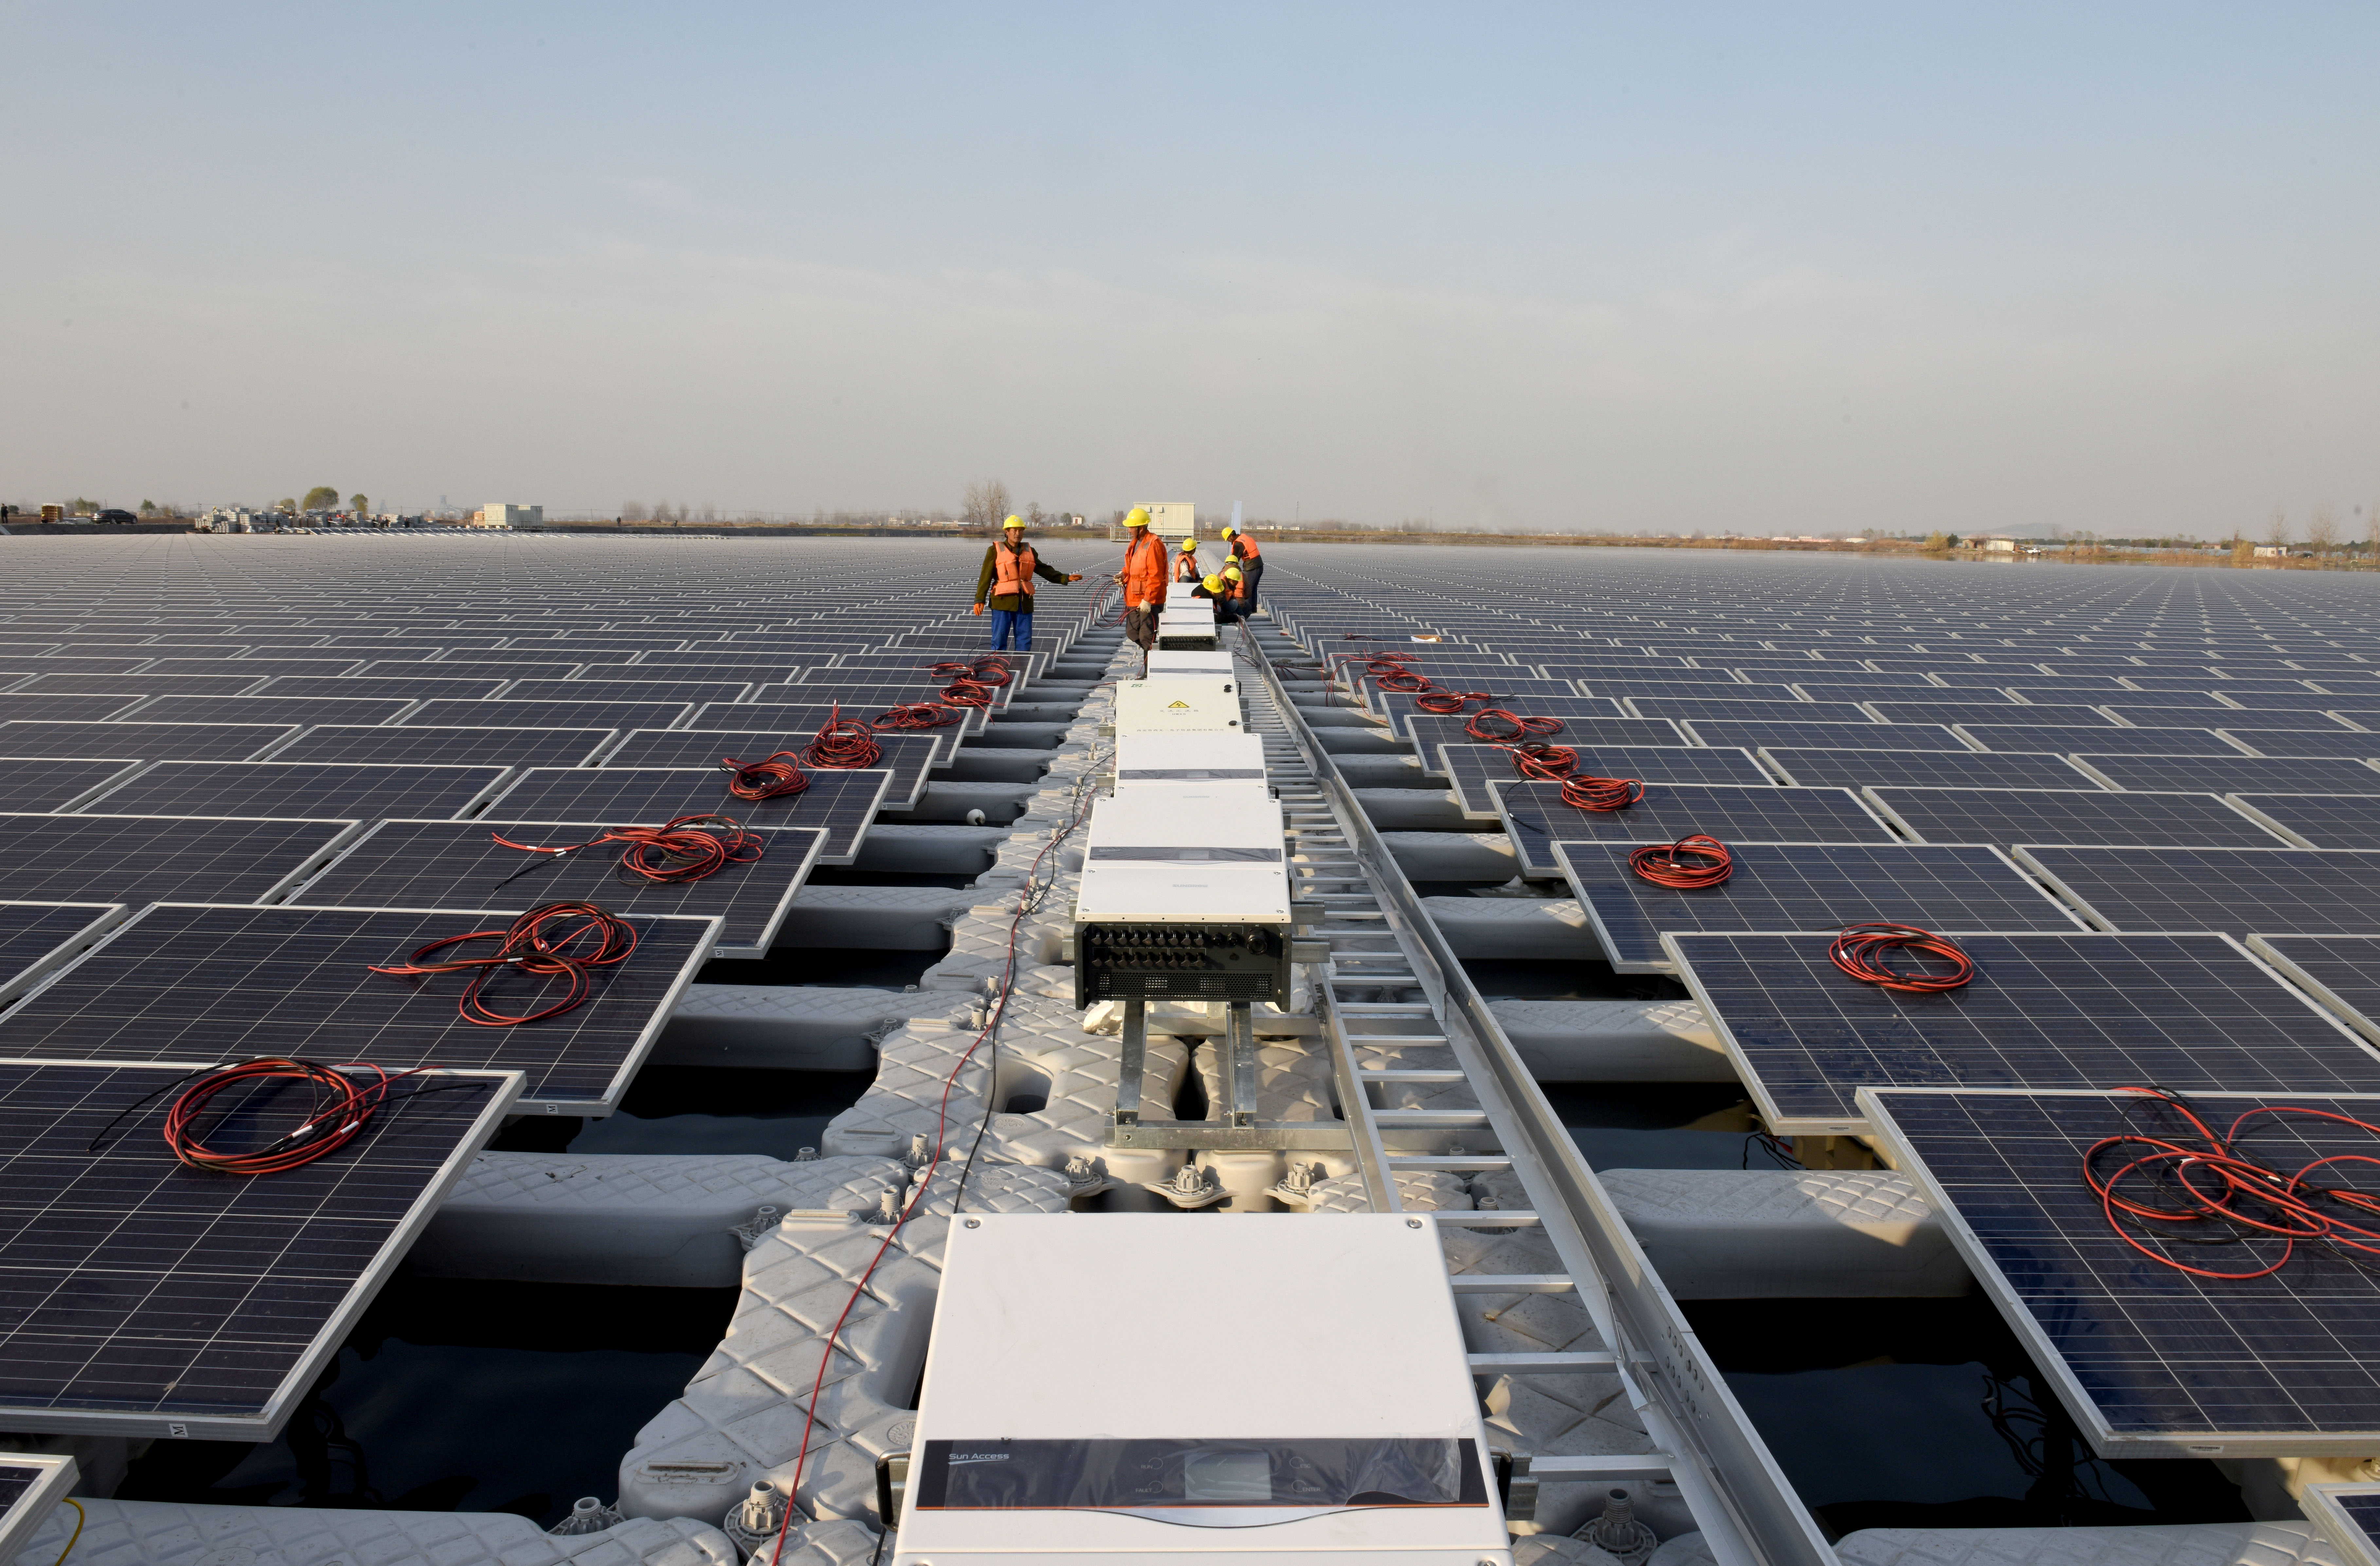 Workers install solar panels at a floating solar plant developed by China's Three Gorges Group, in Huainan, Anhui province, China December 11, 2017. Picture taken December 11, 2017. REUTERS/Stringer